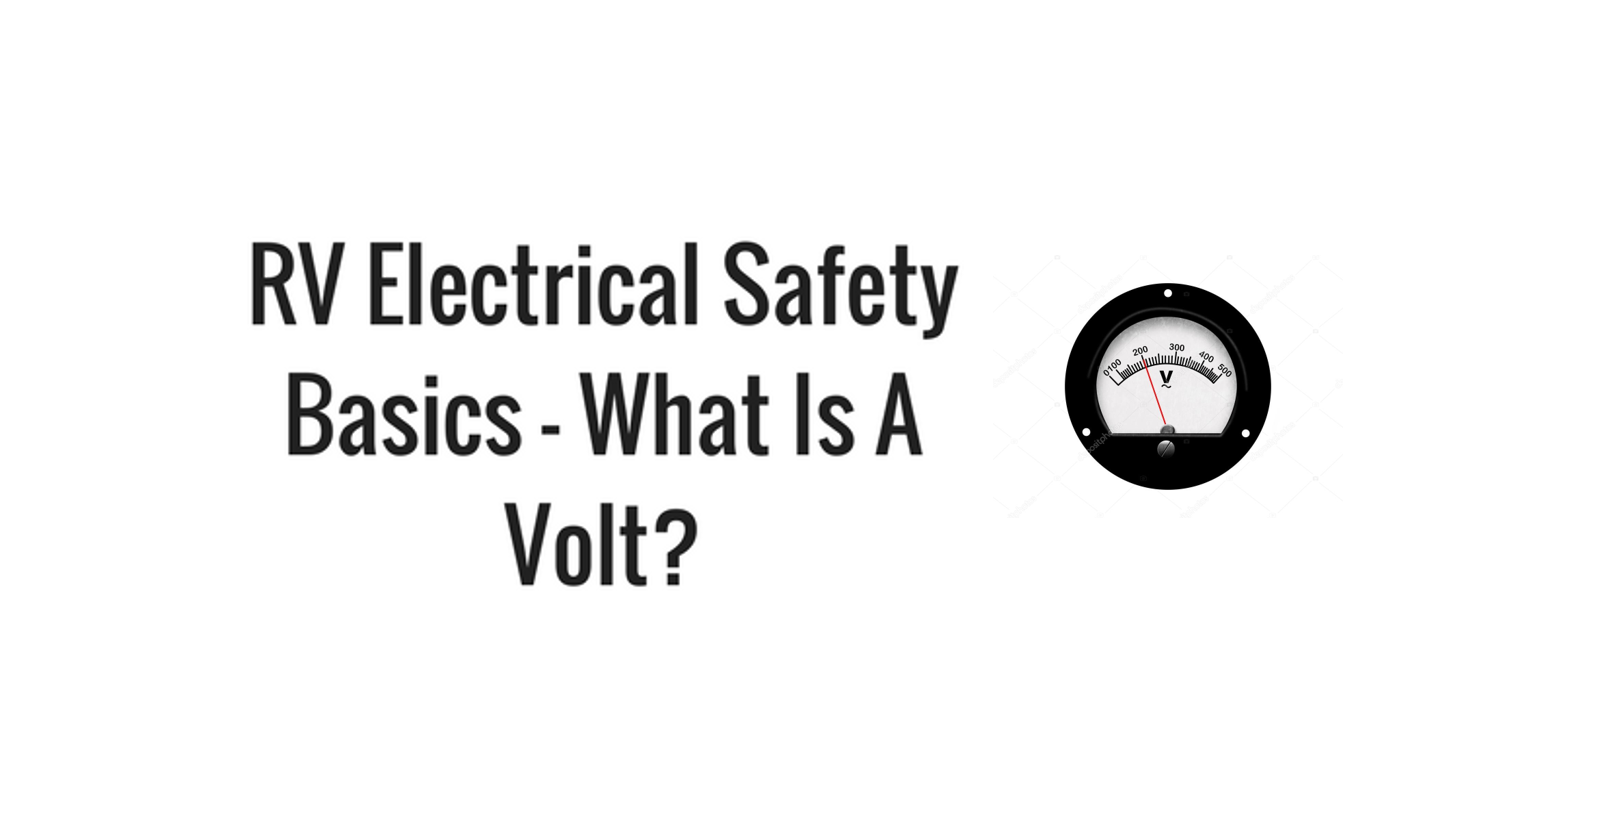 rv electrical safety basics - what is a volt